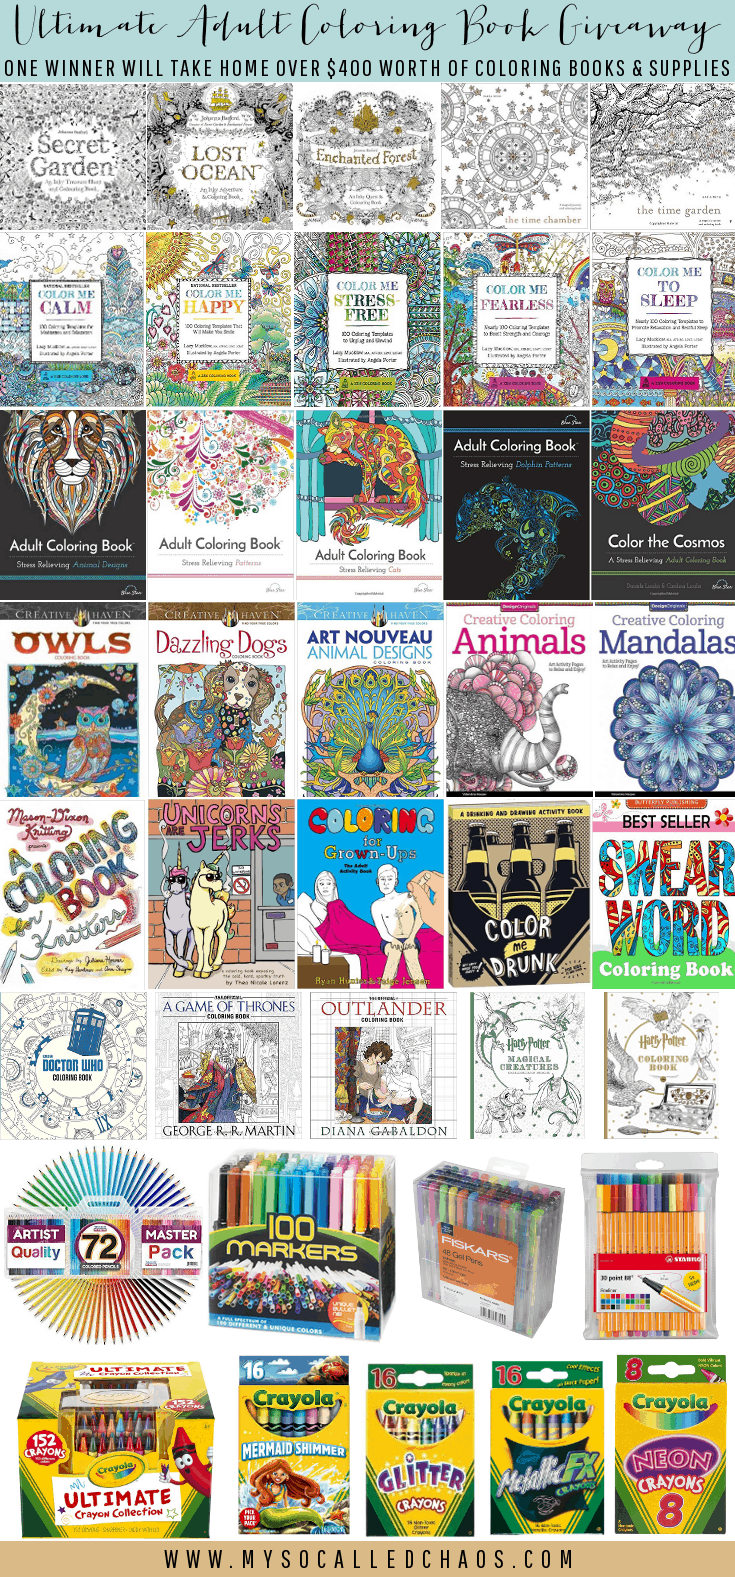 GIVEAWAY TIME: Adult Coloring Book Giveaway!